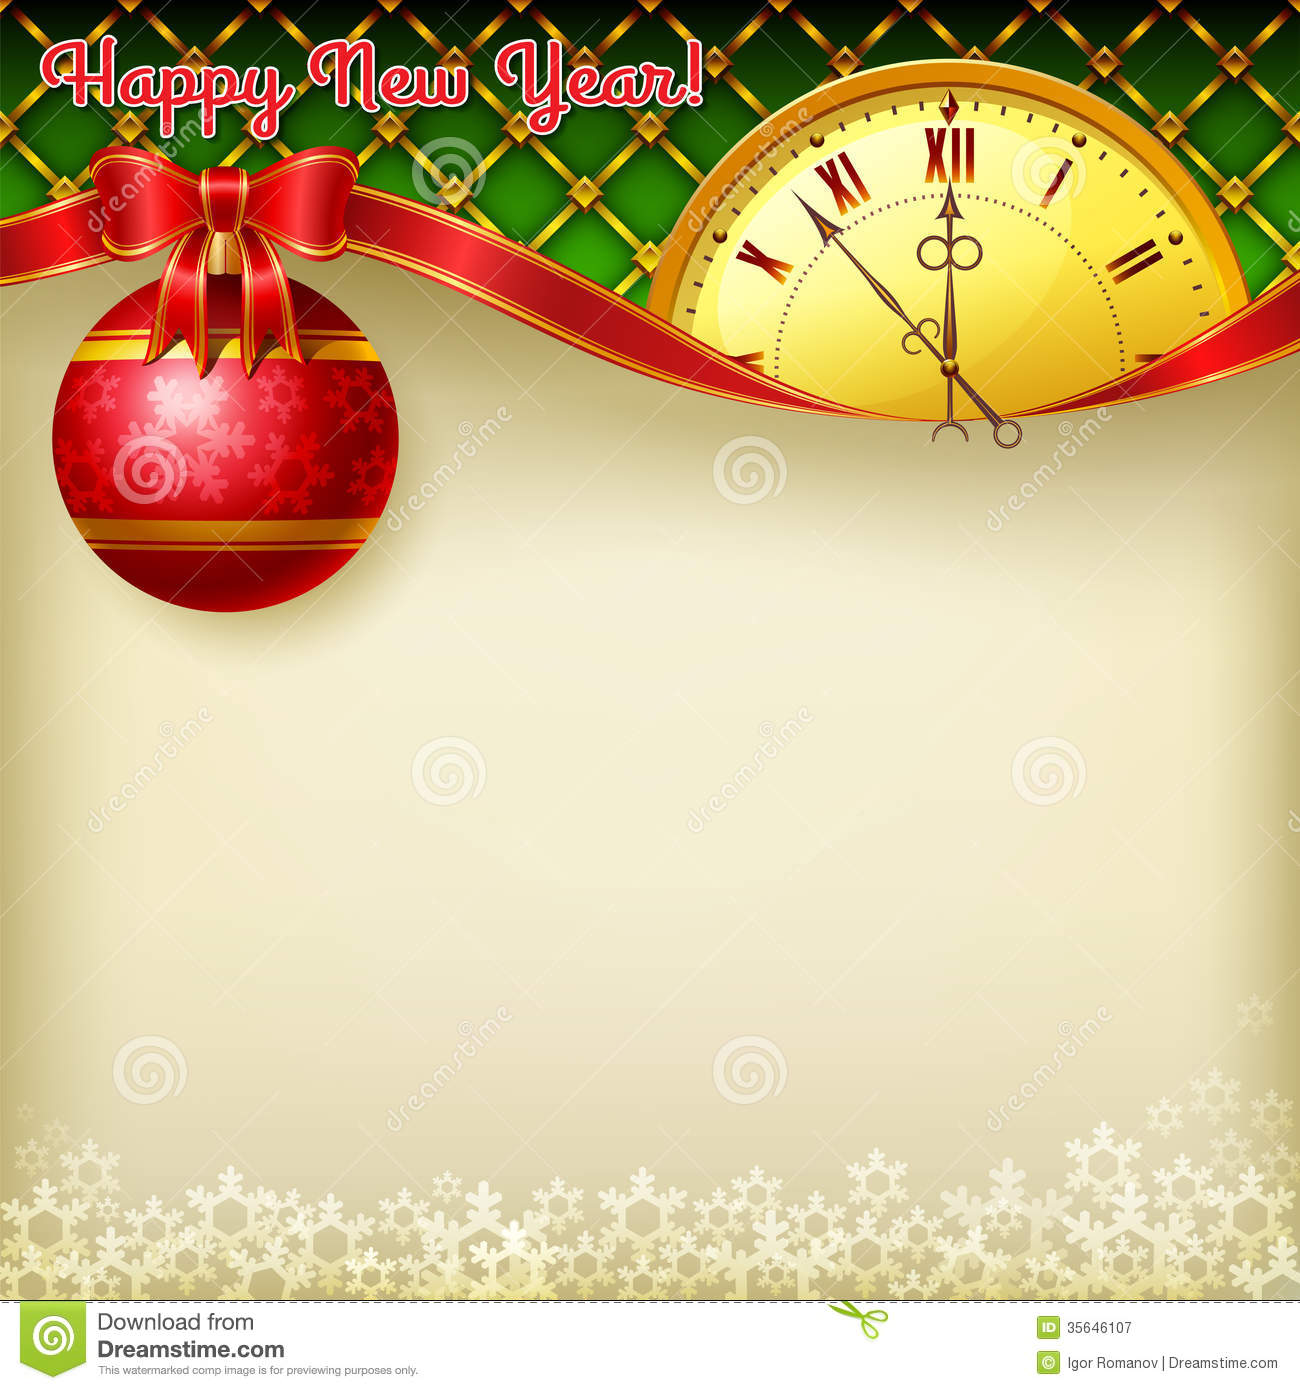 1300x1390 - Happy New Year Backgrounds 15